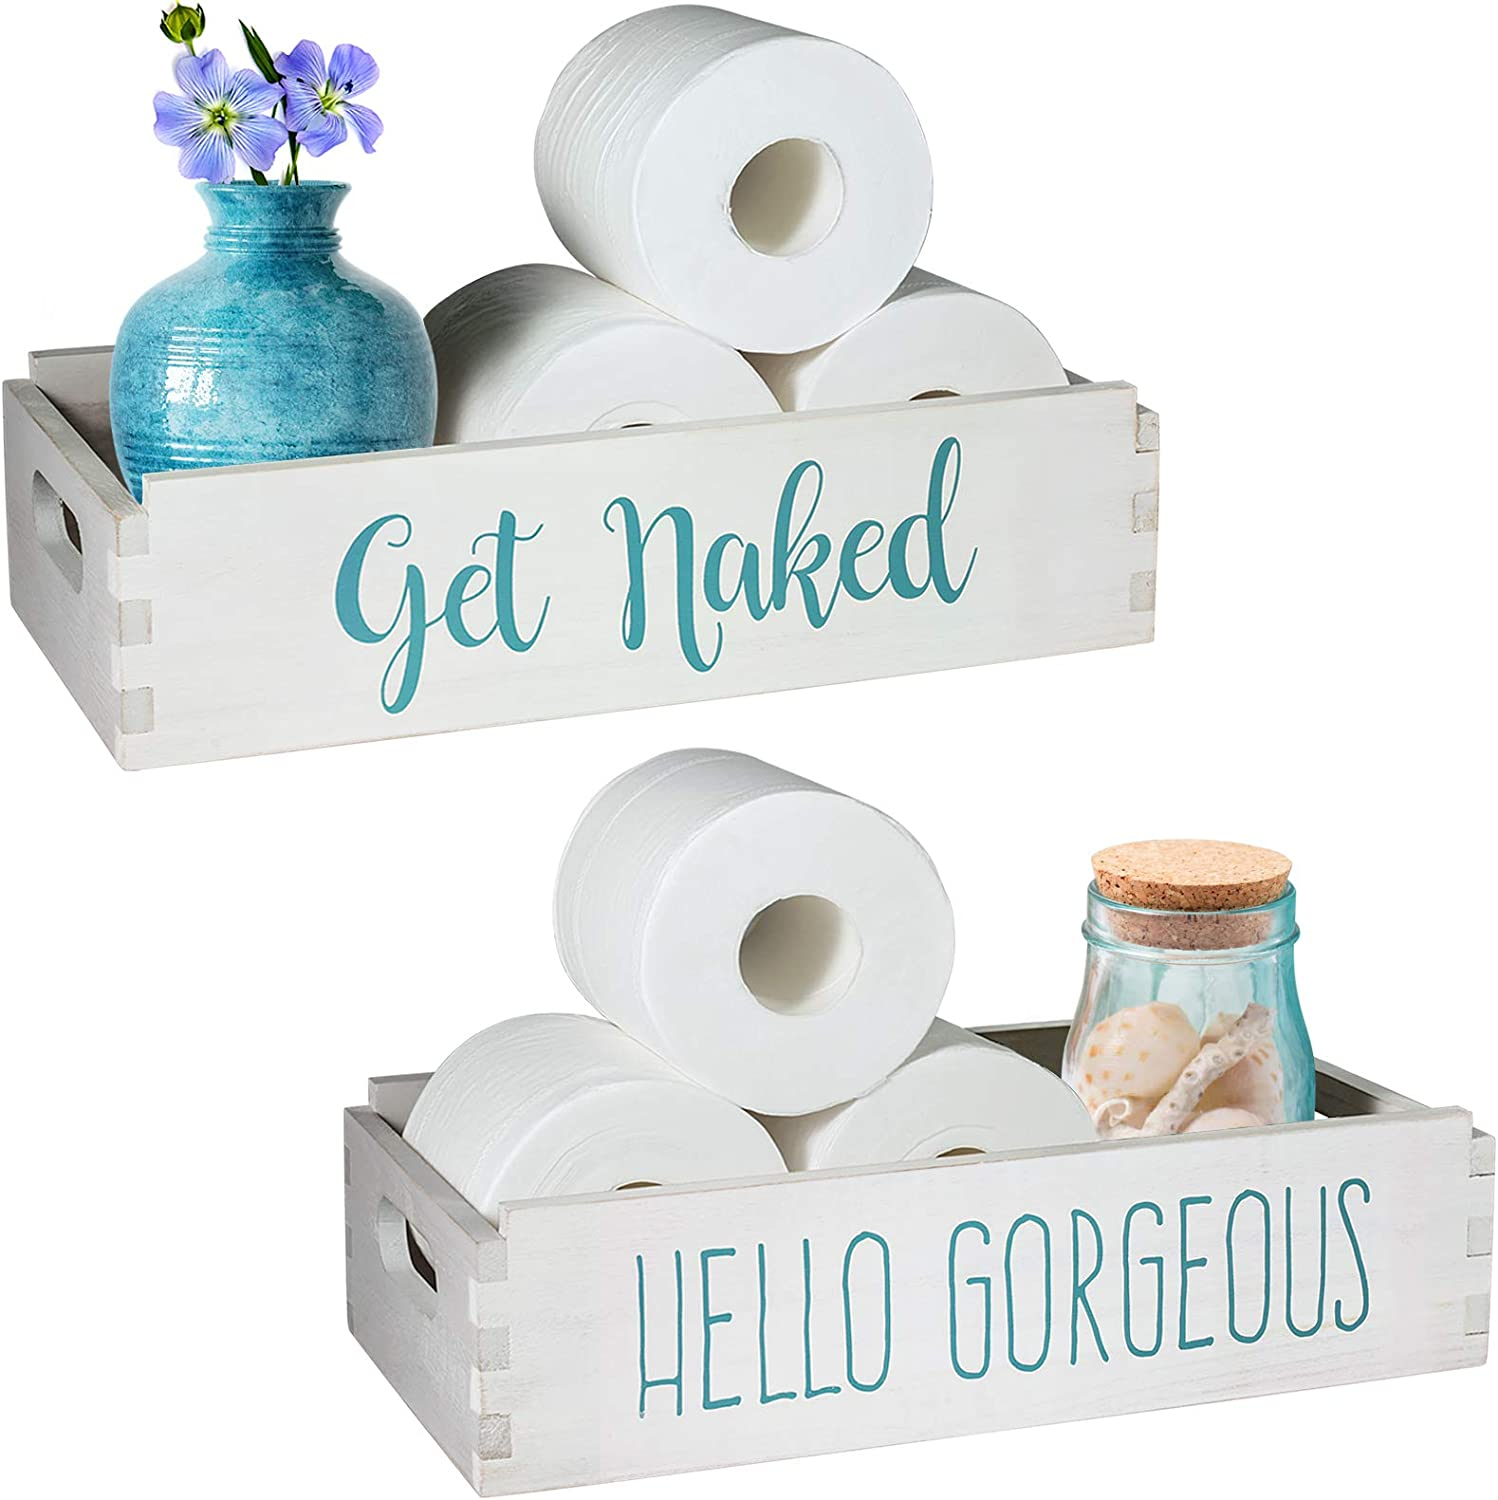 TJ.MOREE Get Naked/Hello Gorgeous Bathroom Decor Box Home Decor Clearance Farmhouse New Home Housewarming Gift Makeup Table Coastal Decor Box